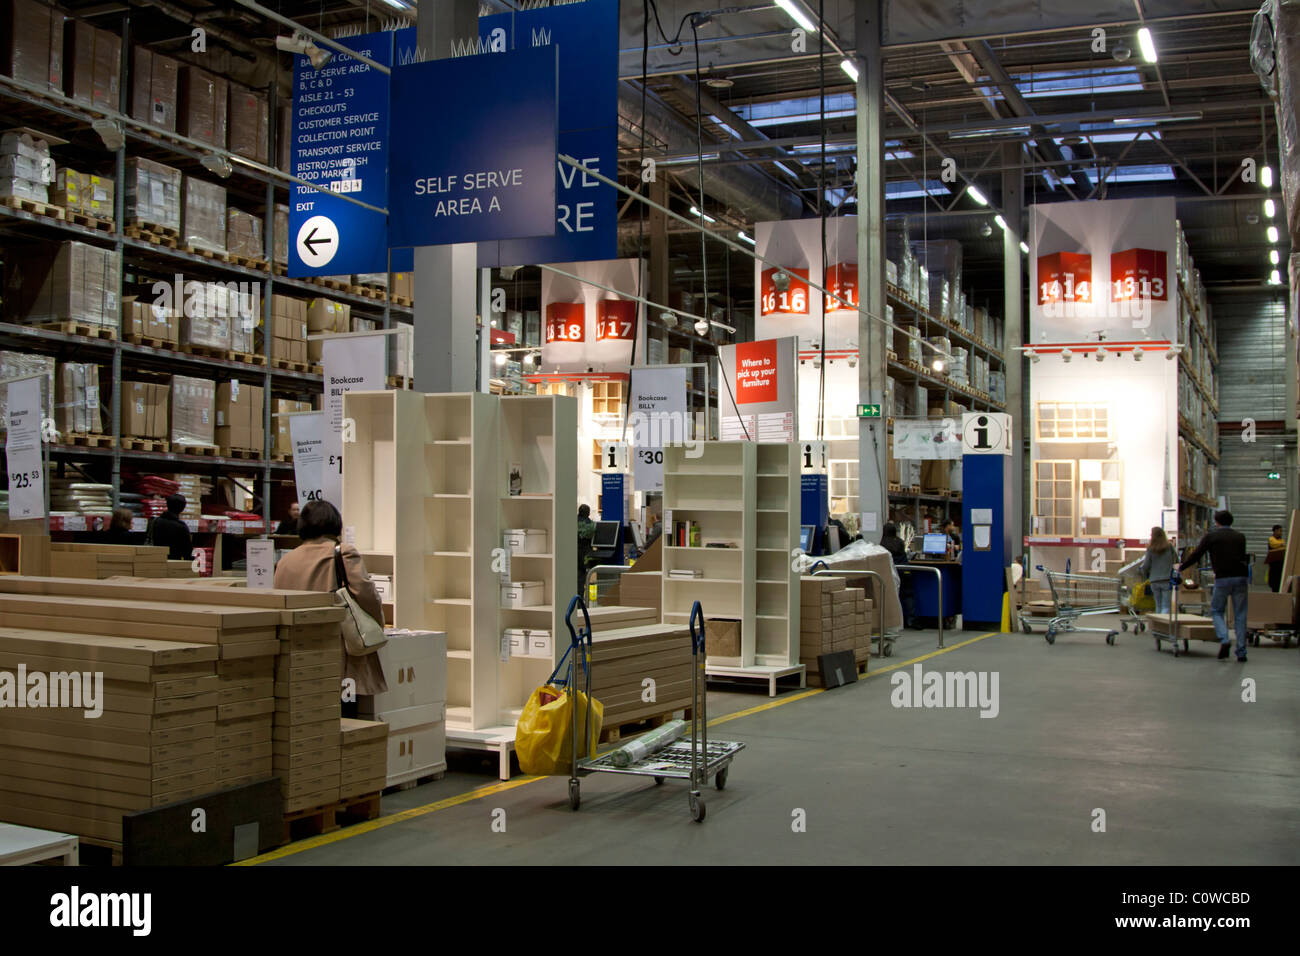 ikea self service collection isles wembley london stock photo royalty free image 34979265. Black Bedroom Furniture Sets. Home Design Ideas